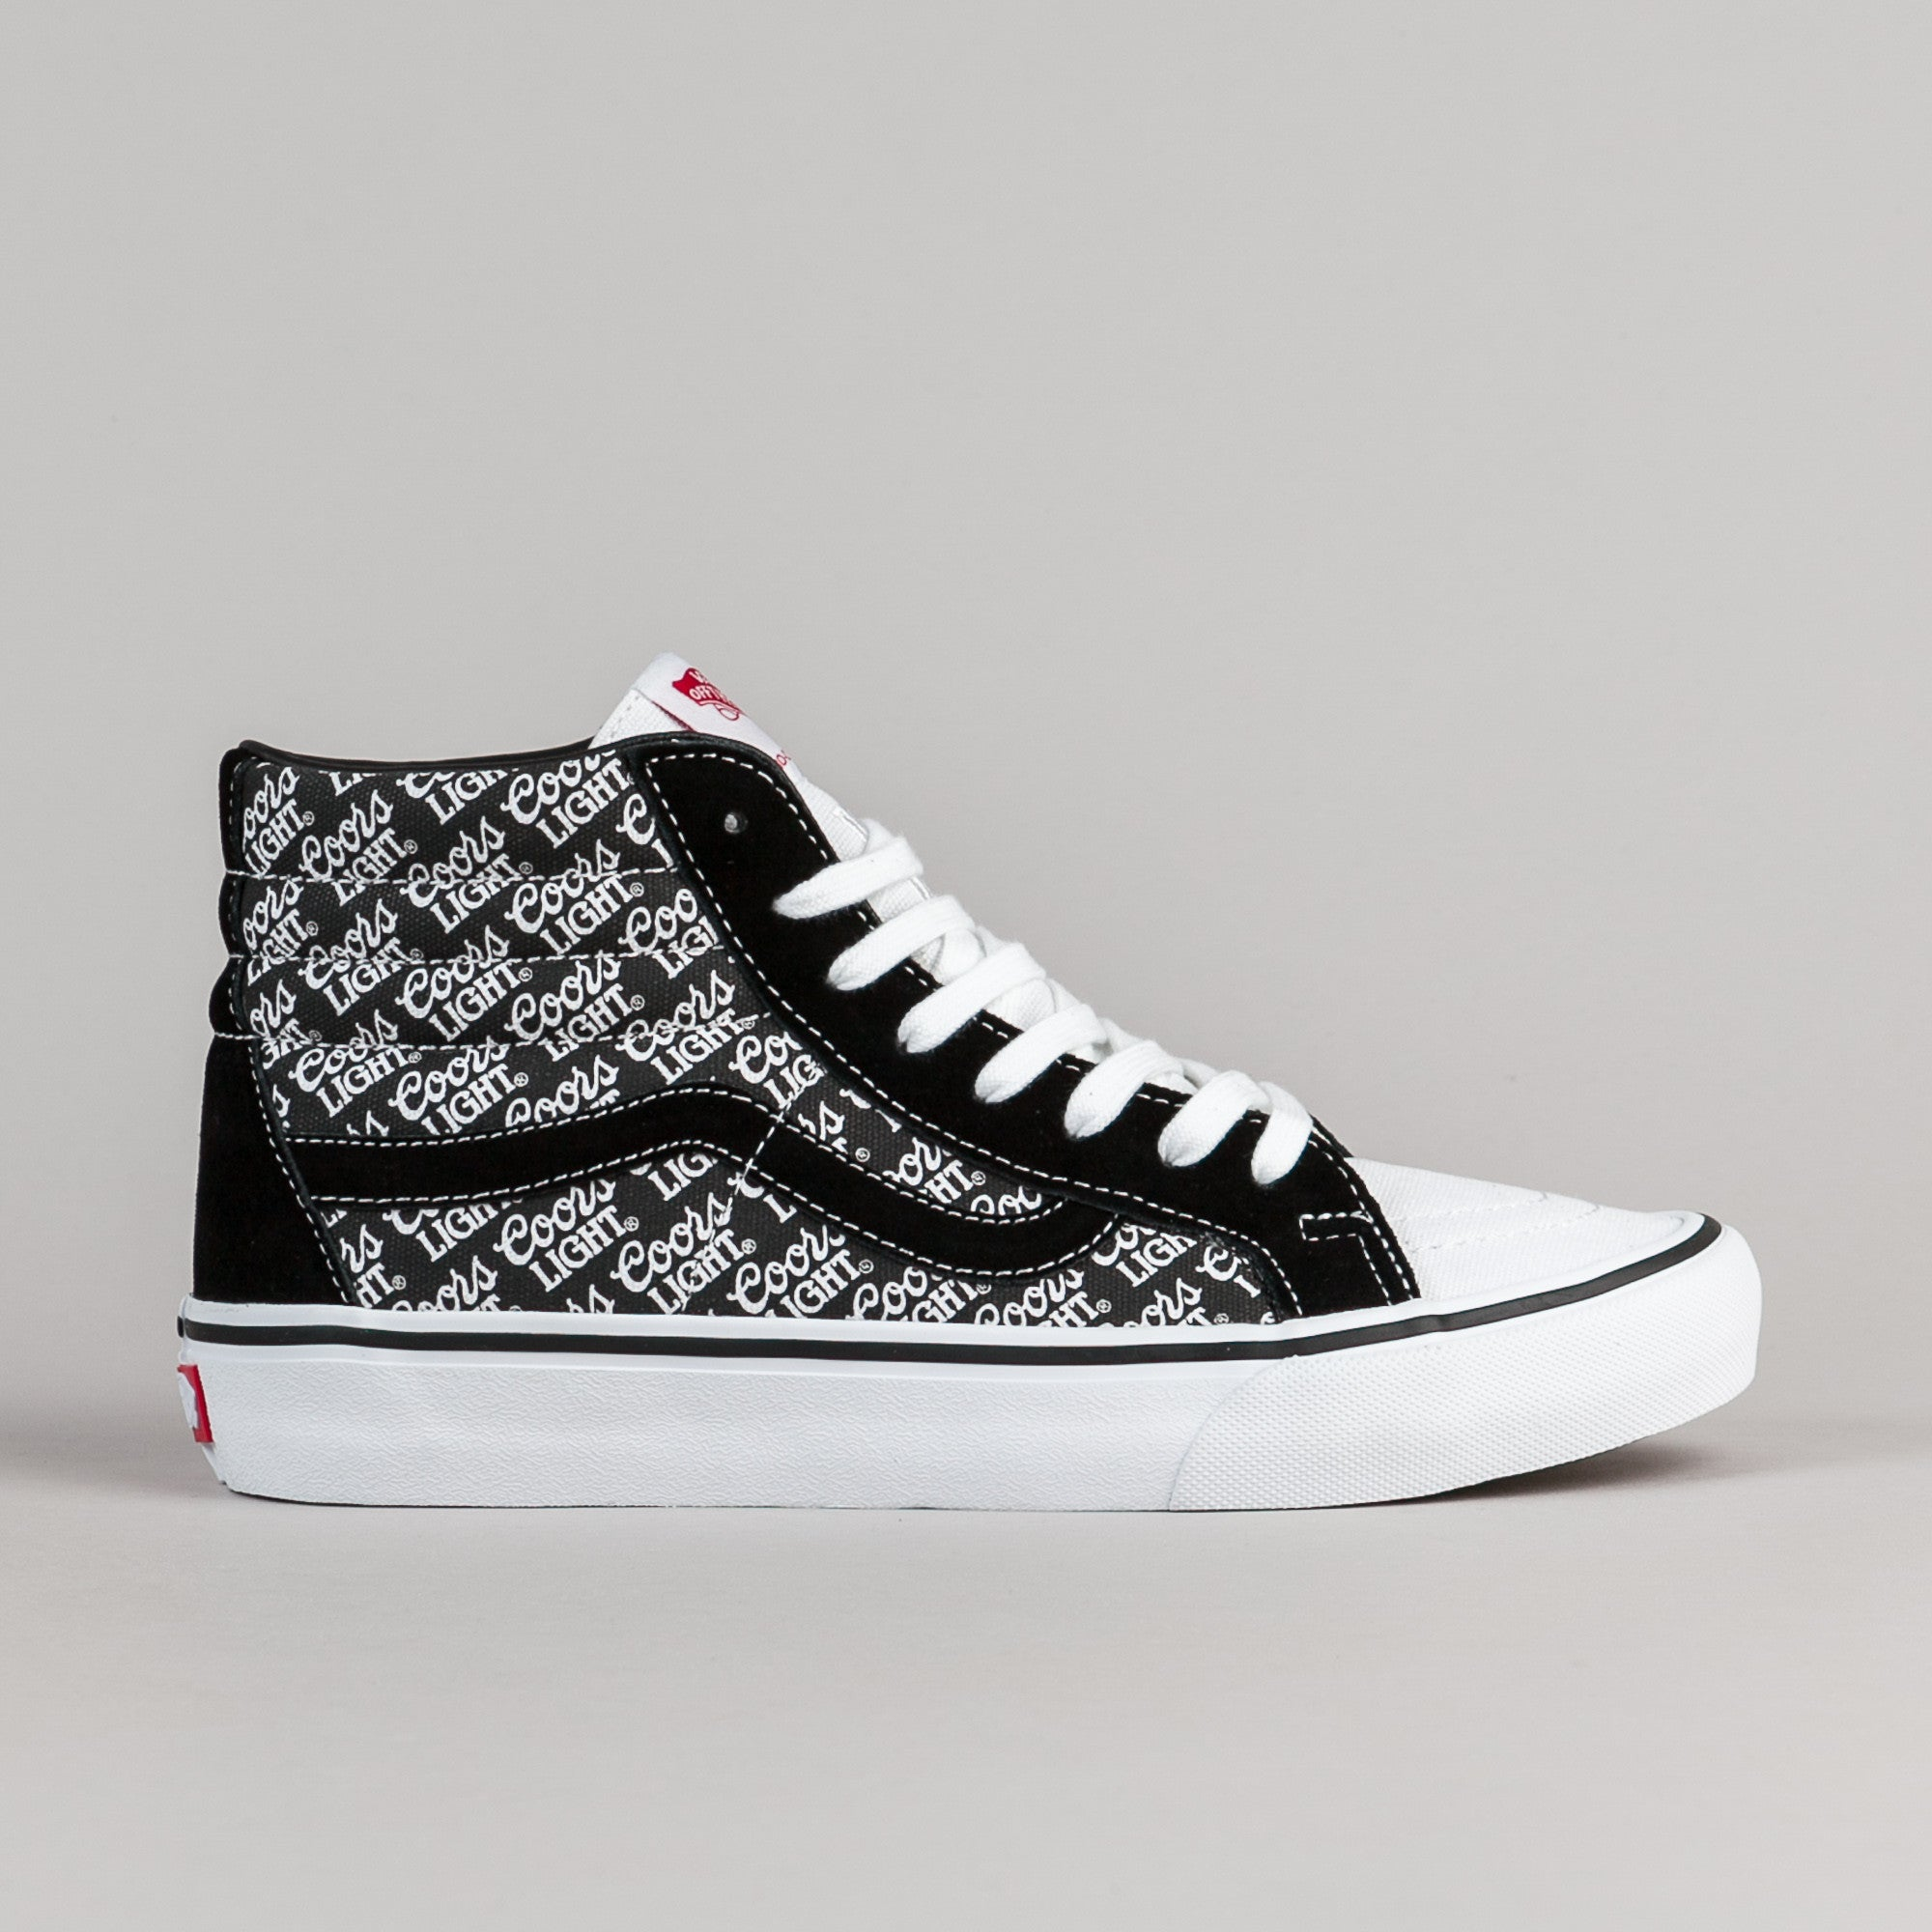 Vans 50th Sk8-Hi Pro '91 Reissue Shoes - Coors Light / Black